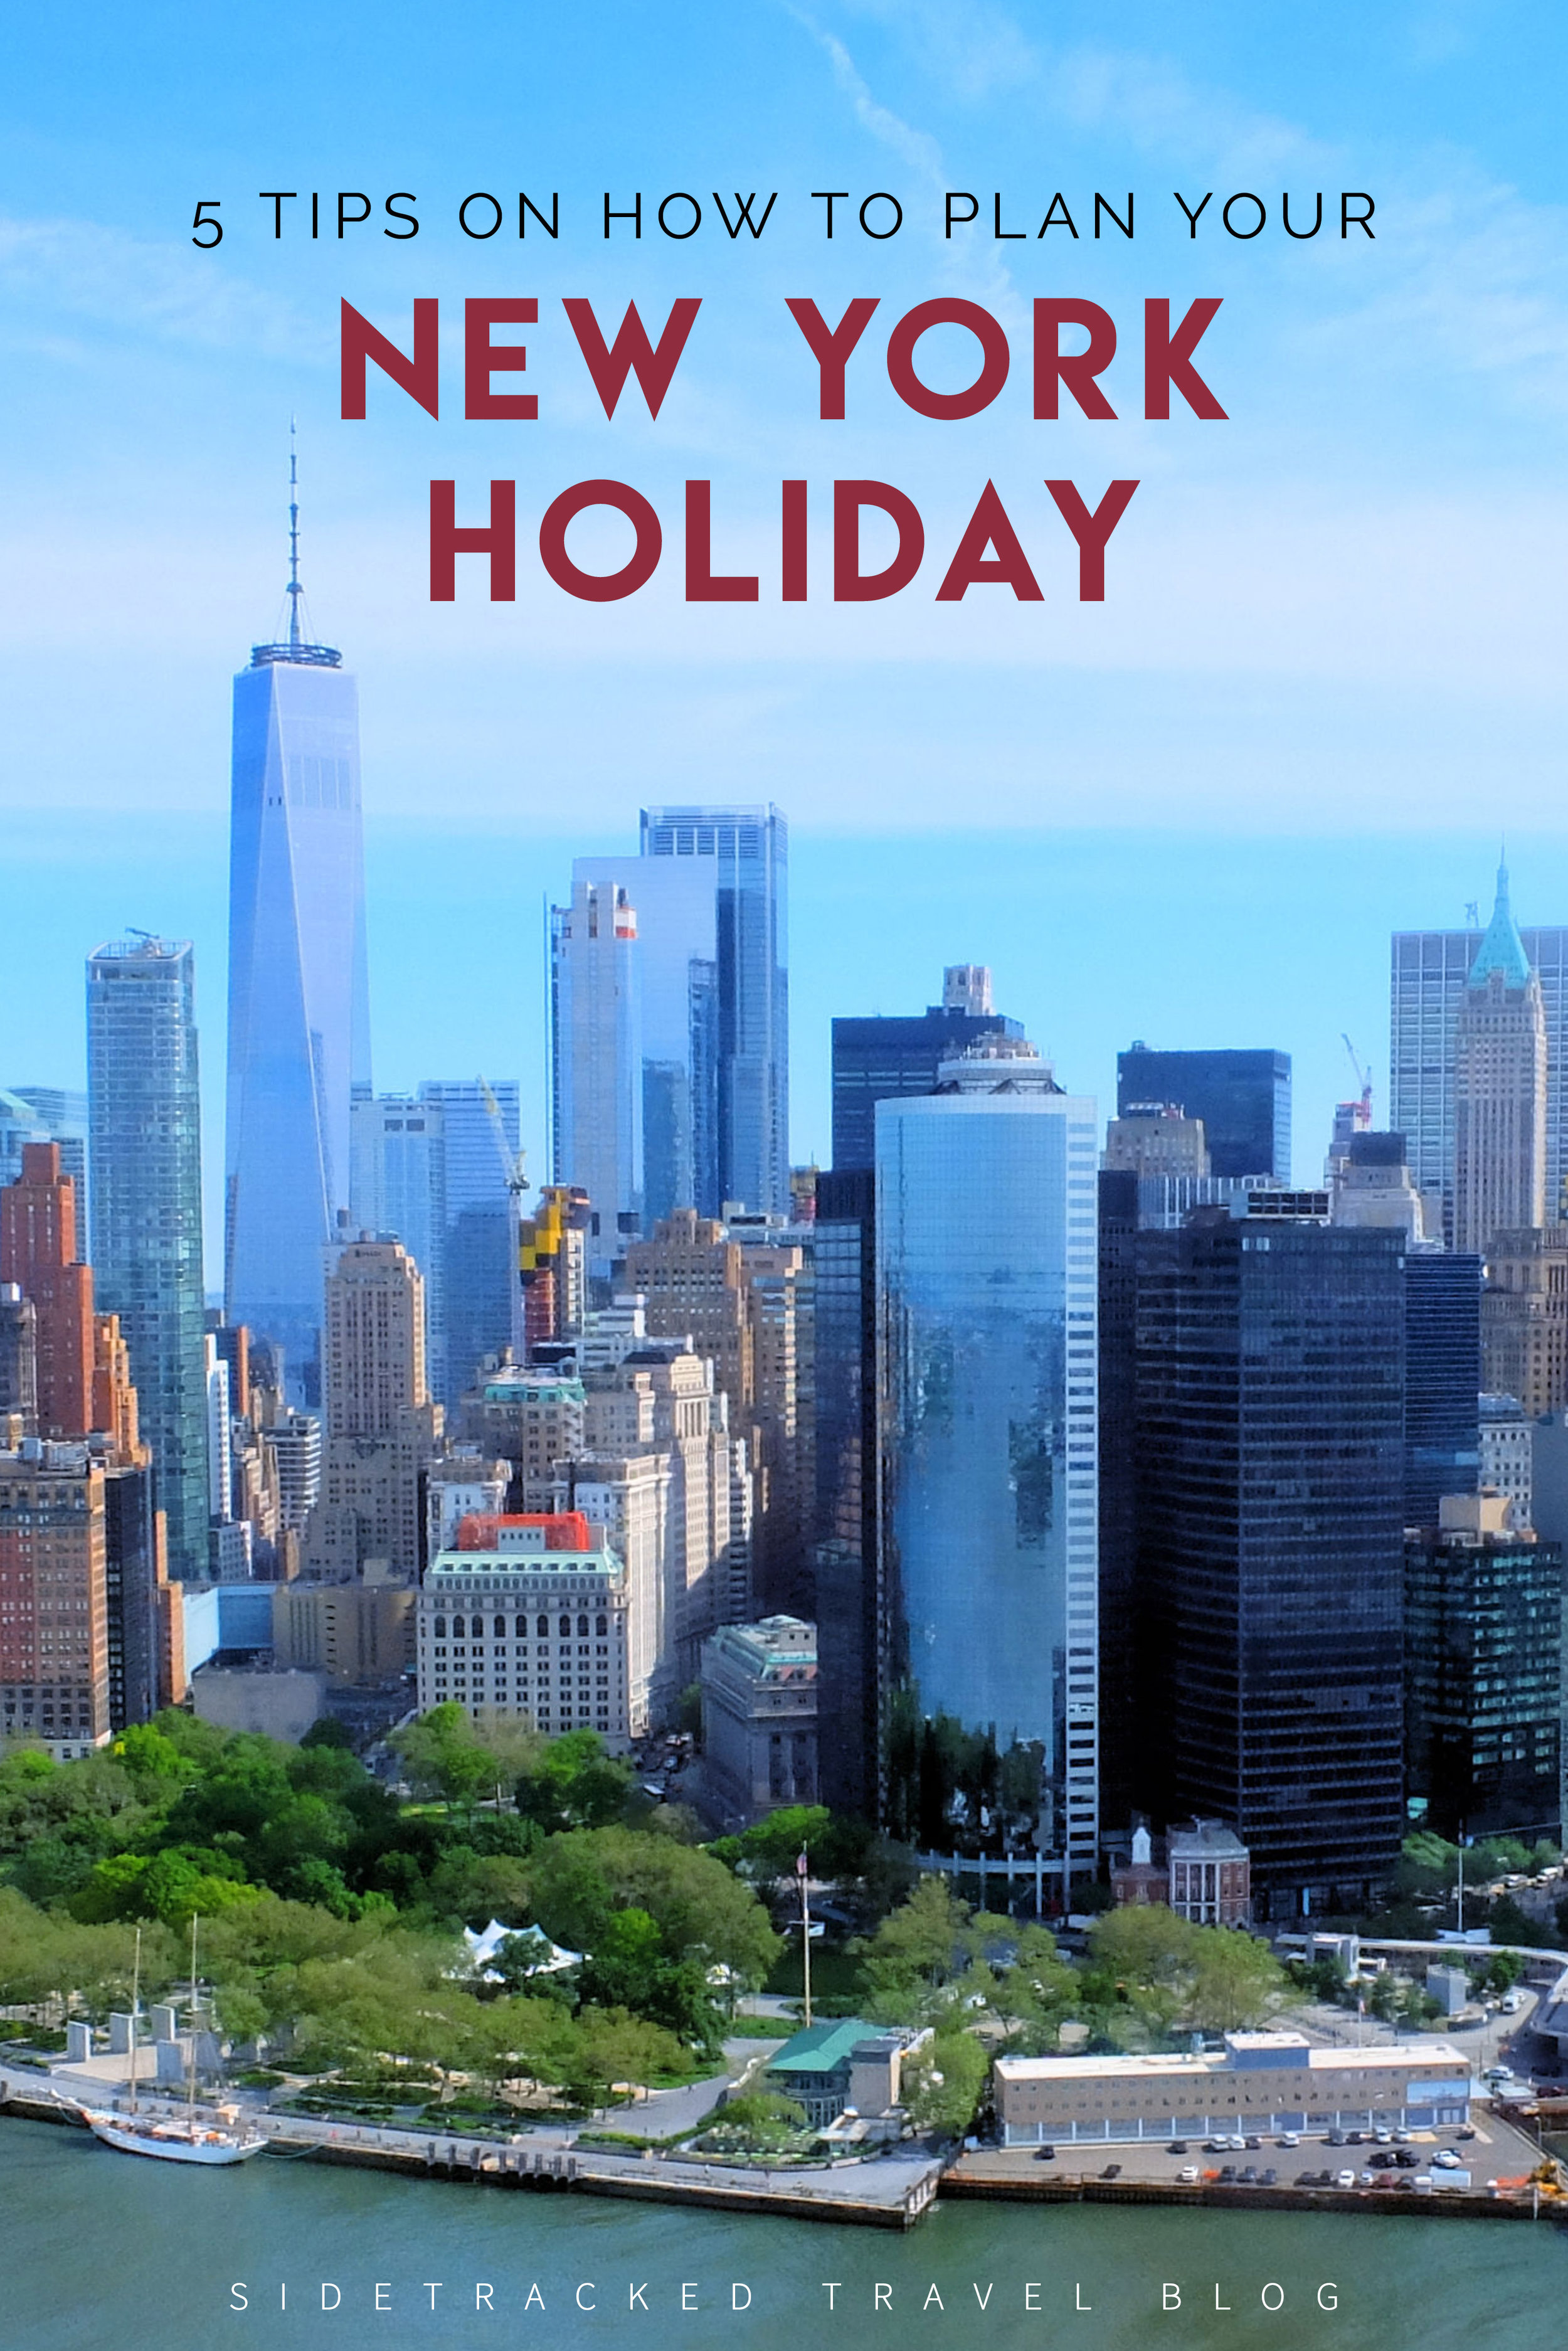 Planning a trip to New York City can be daunting, as there is so much to see and do. Over 13 miles in length, the island of Manhattan is so densely populated that even the famous Empire State Building has its own zip code! The recipe for success when planning your holiday? A checklist, of course!